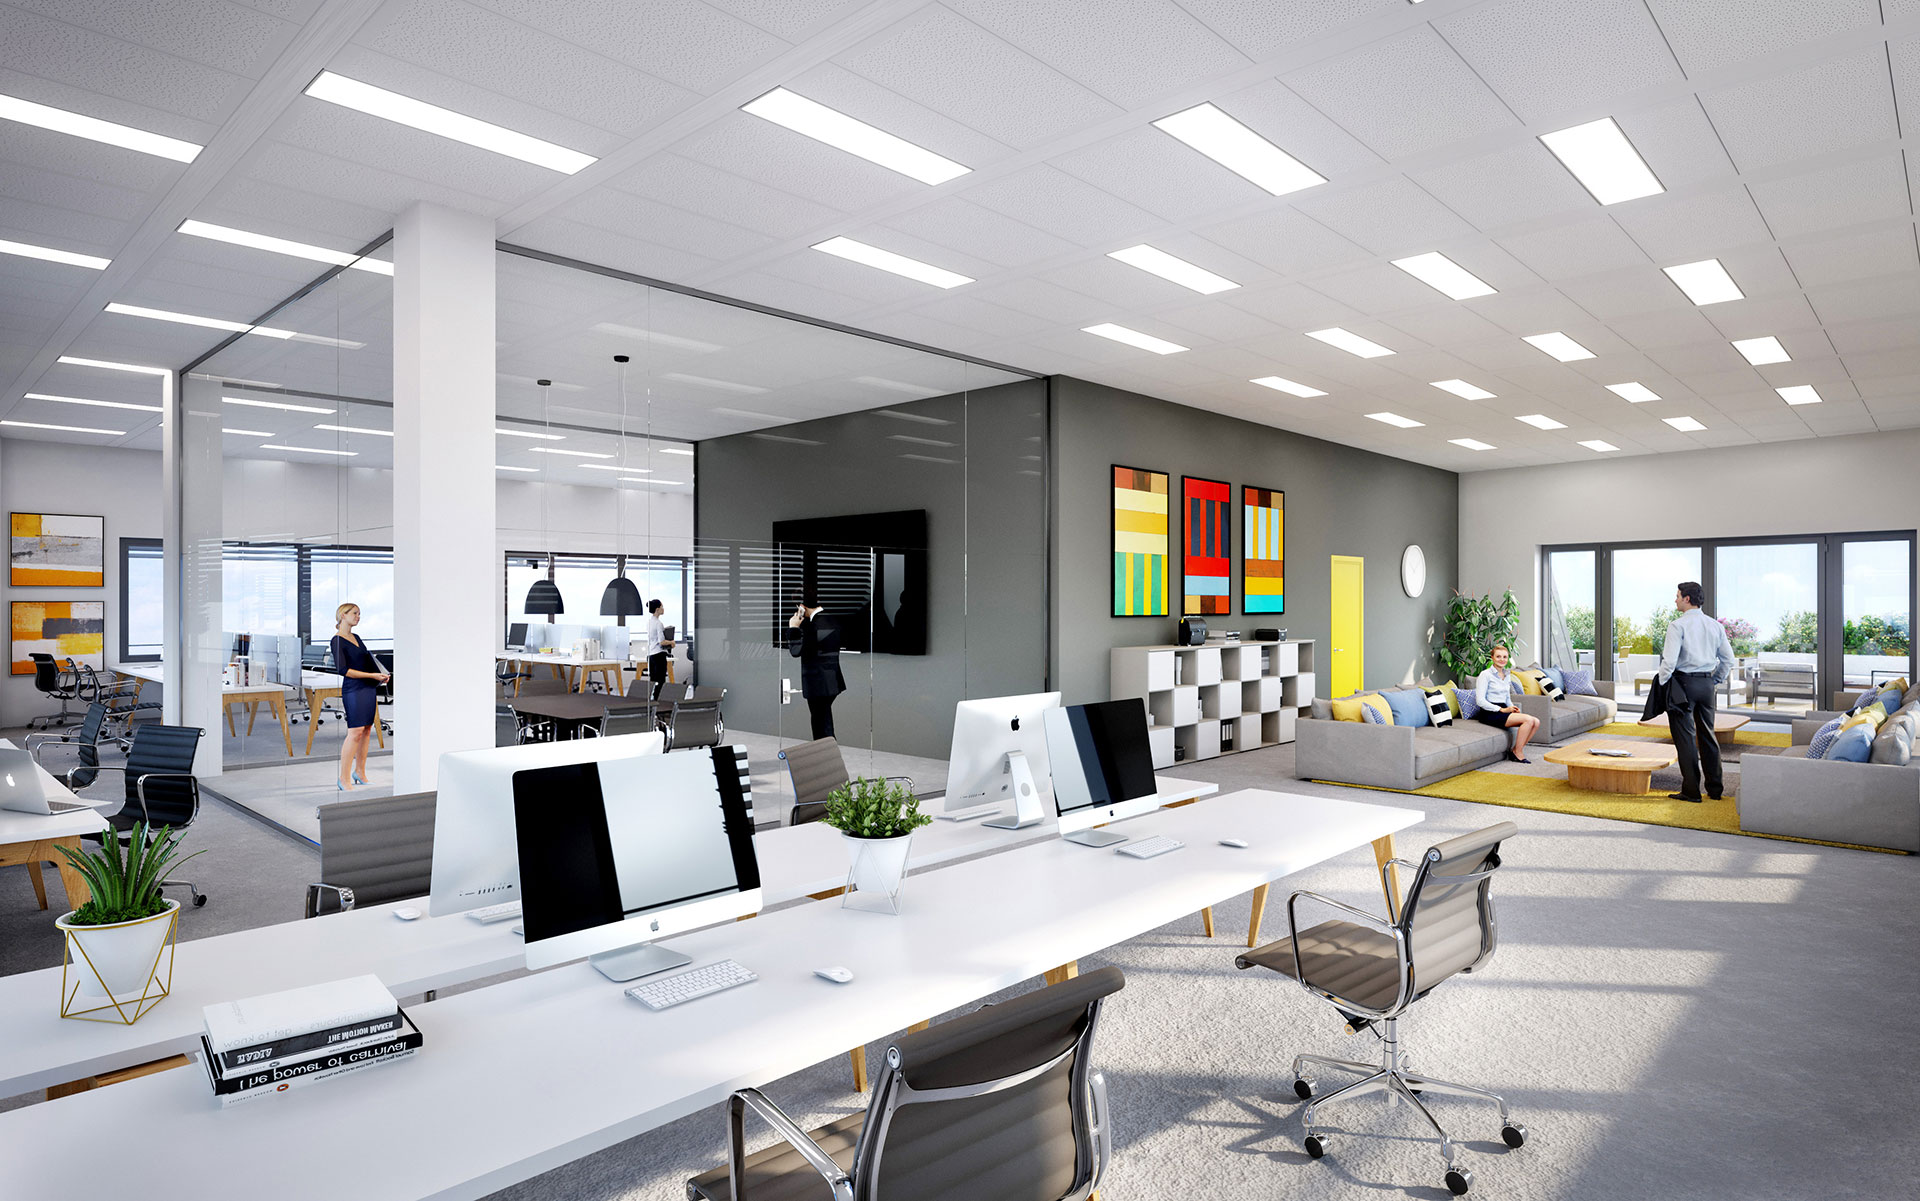 3D visualization of a new modern open space office